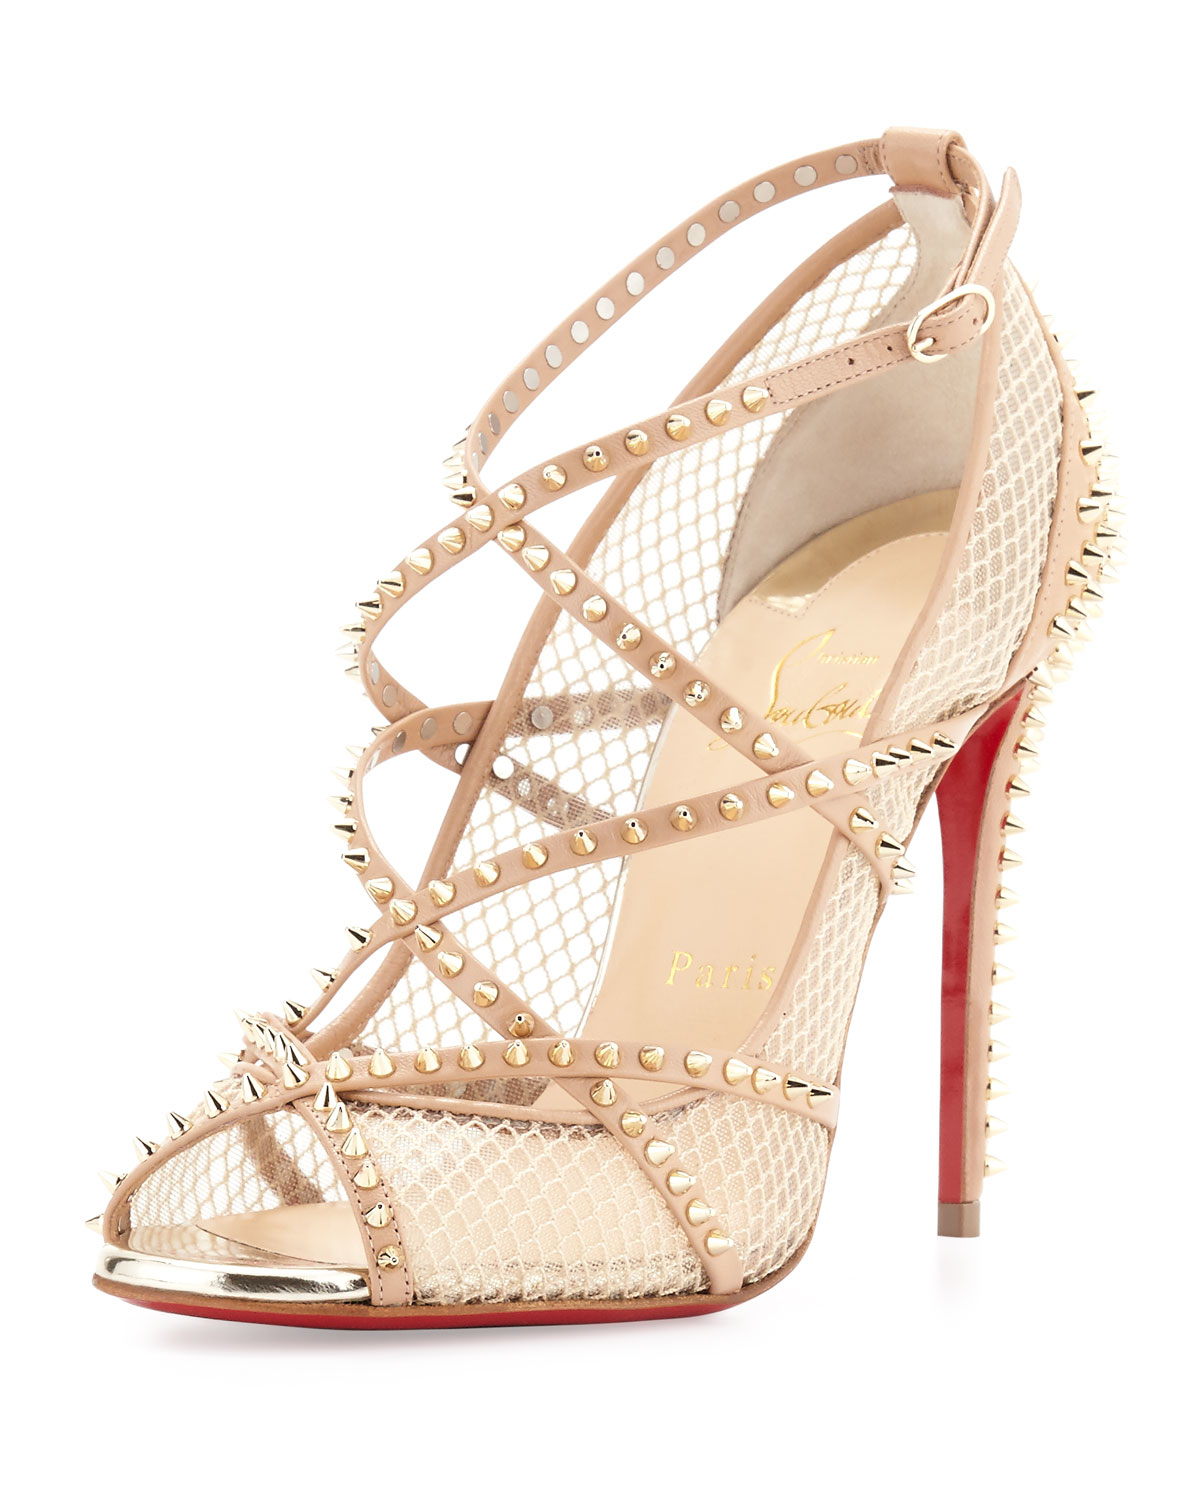 christian louboutin alarc spiked strappy mesh sandals